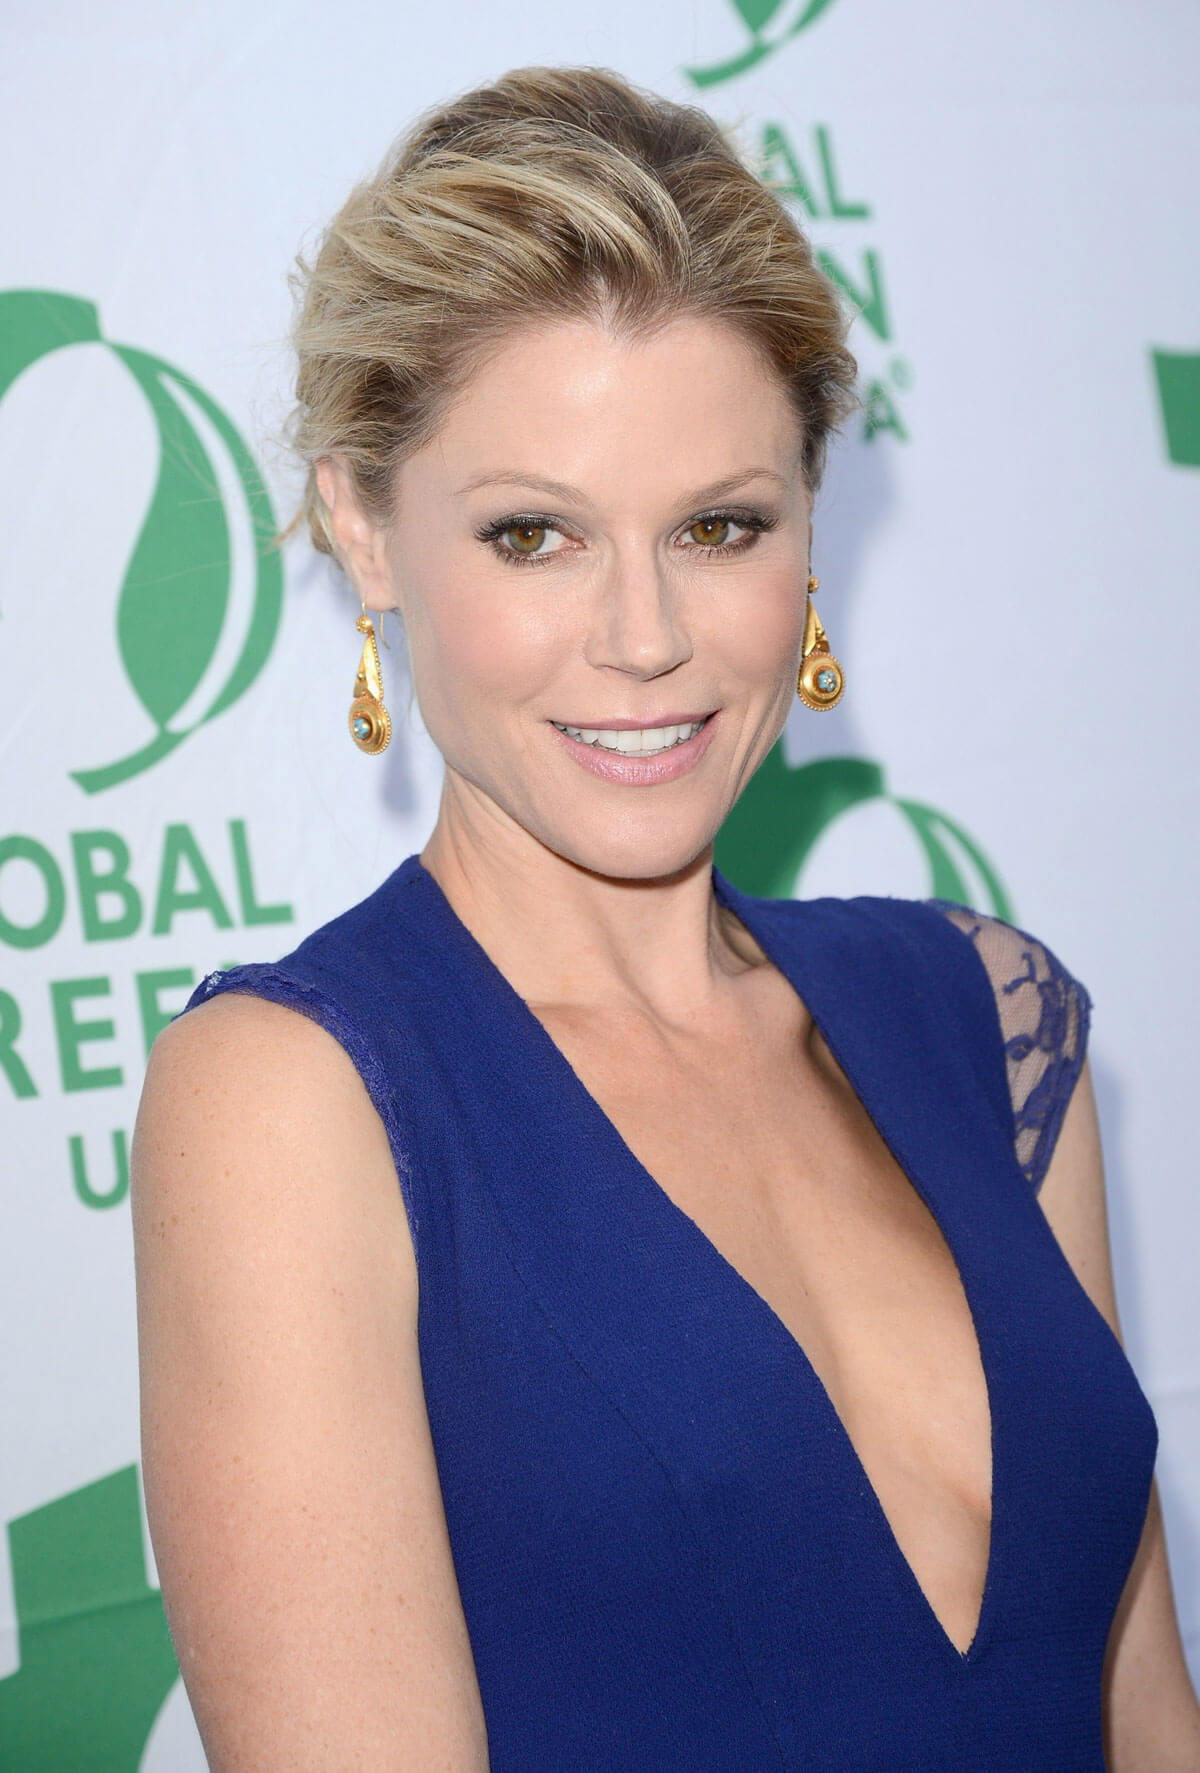 Julie Bowen suide boobs